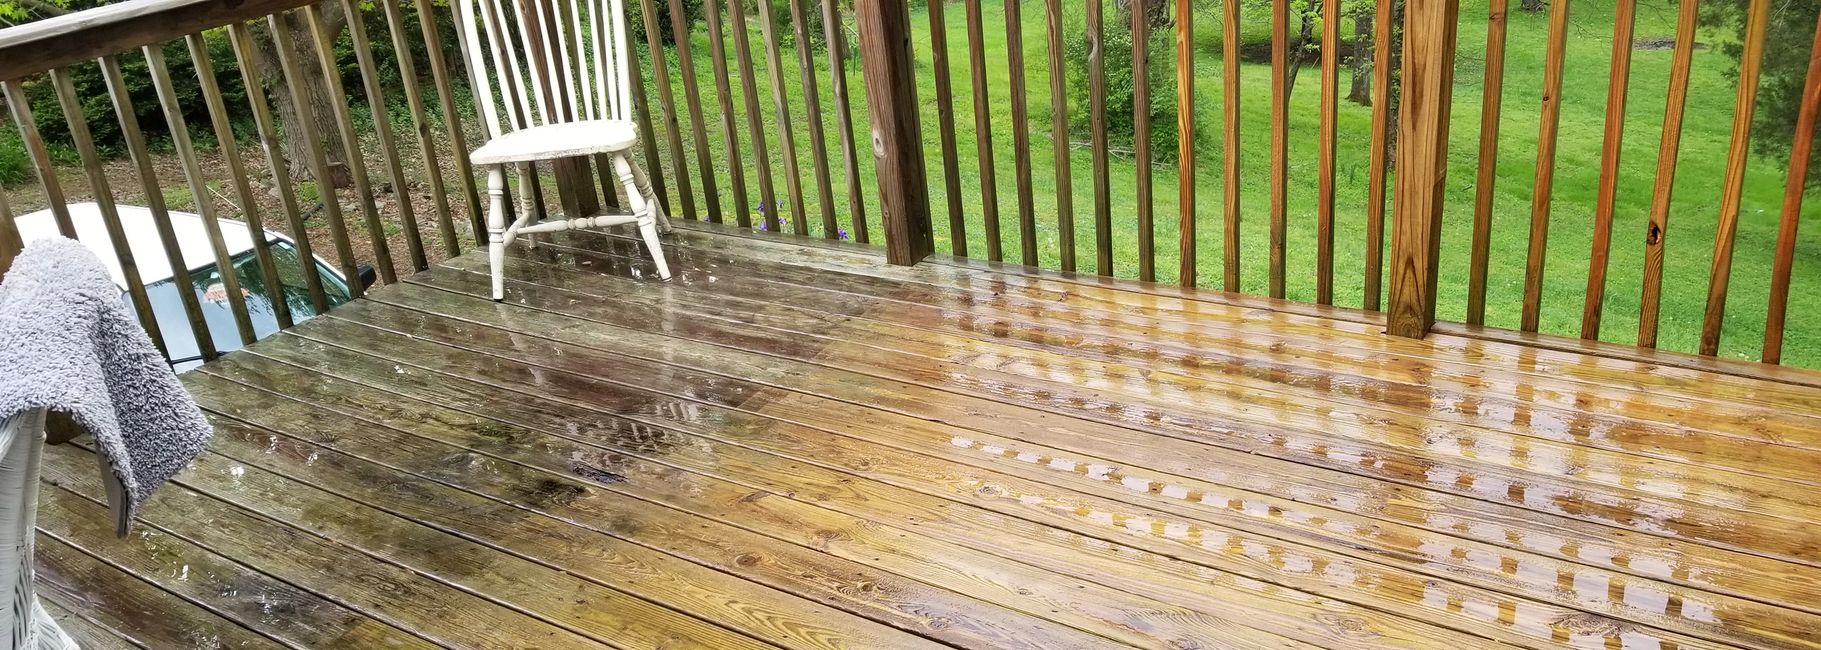 wooden deck cleaning by American Pressure Washing.com